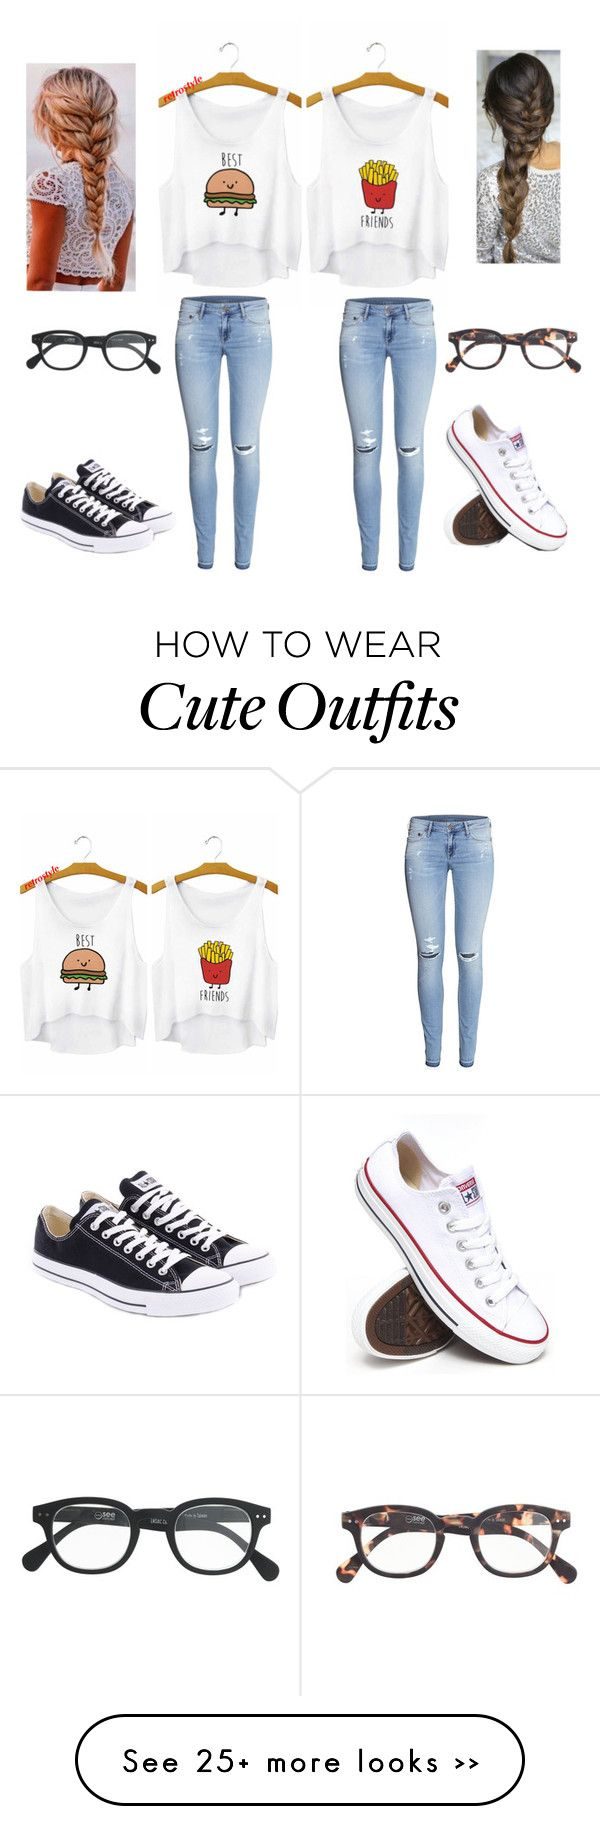 """Just another best friend outfit"" by alexistkachuk on Polyvore"